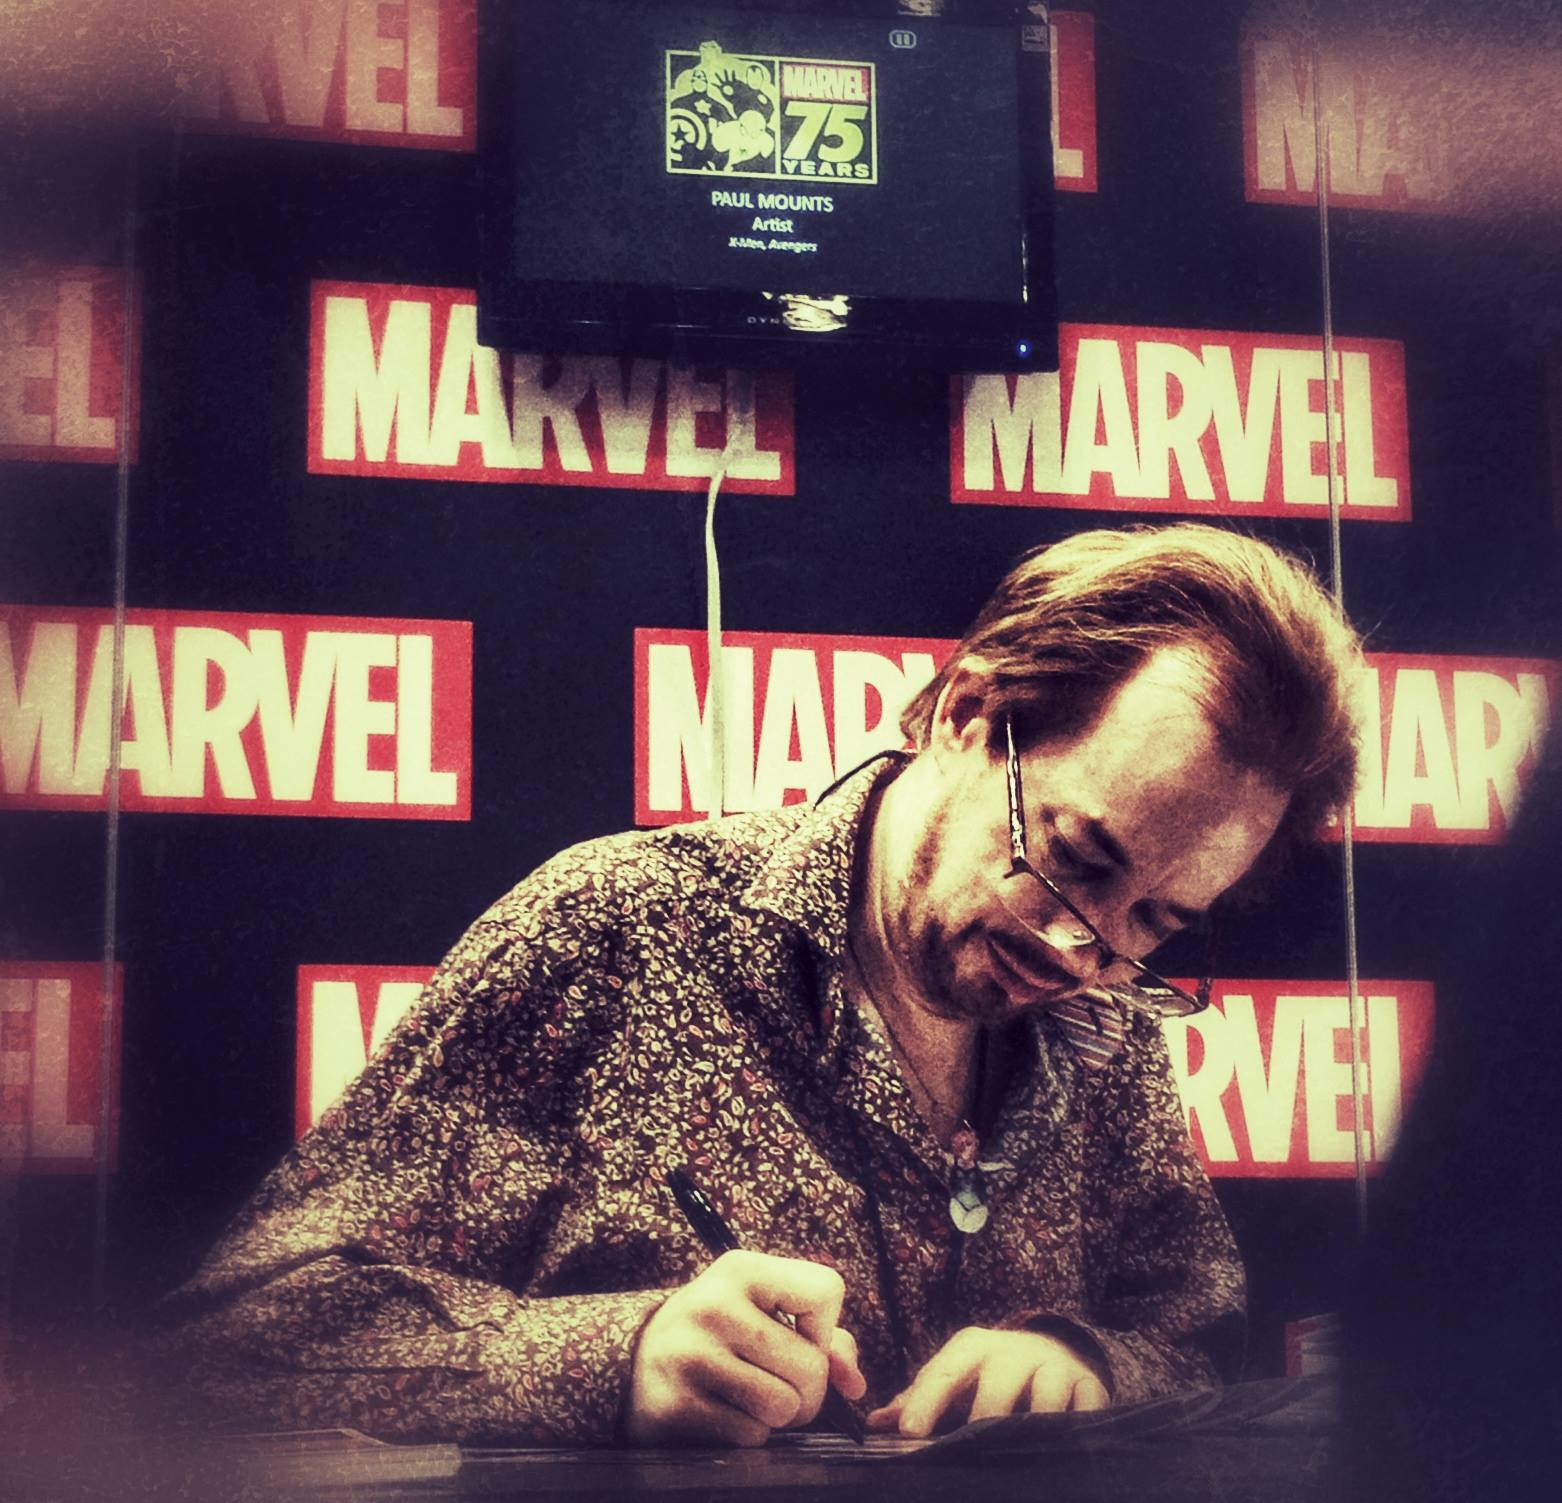 Signing at the Marvel booth